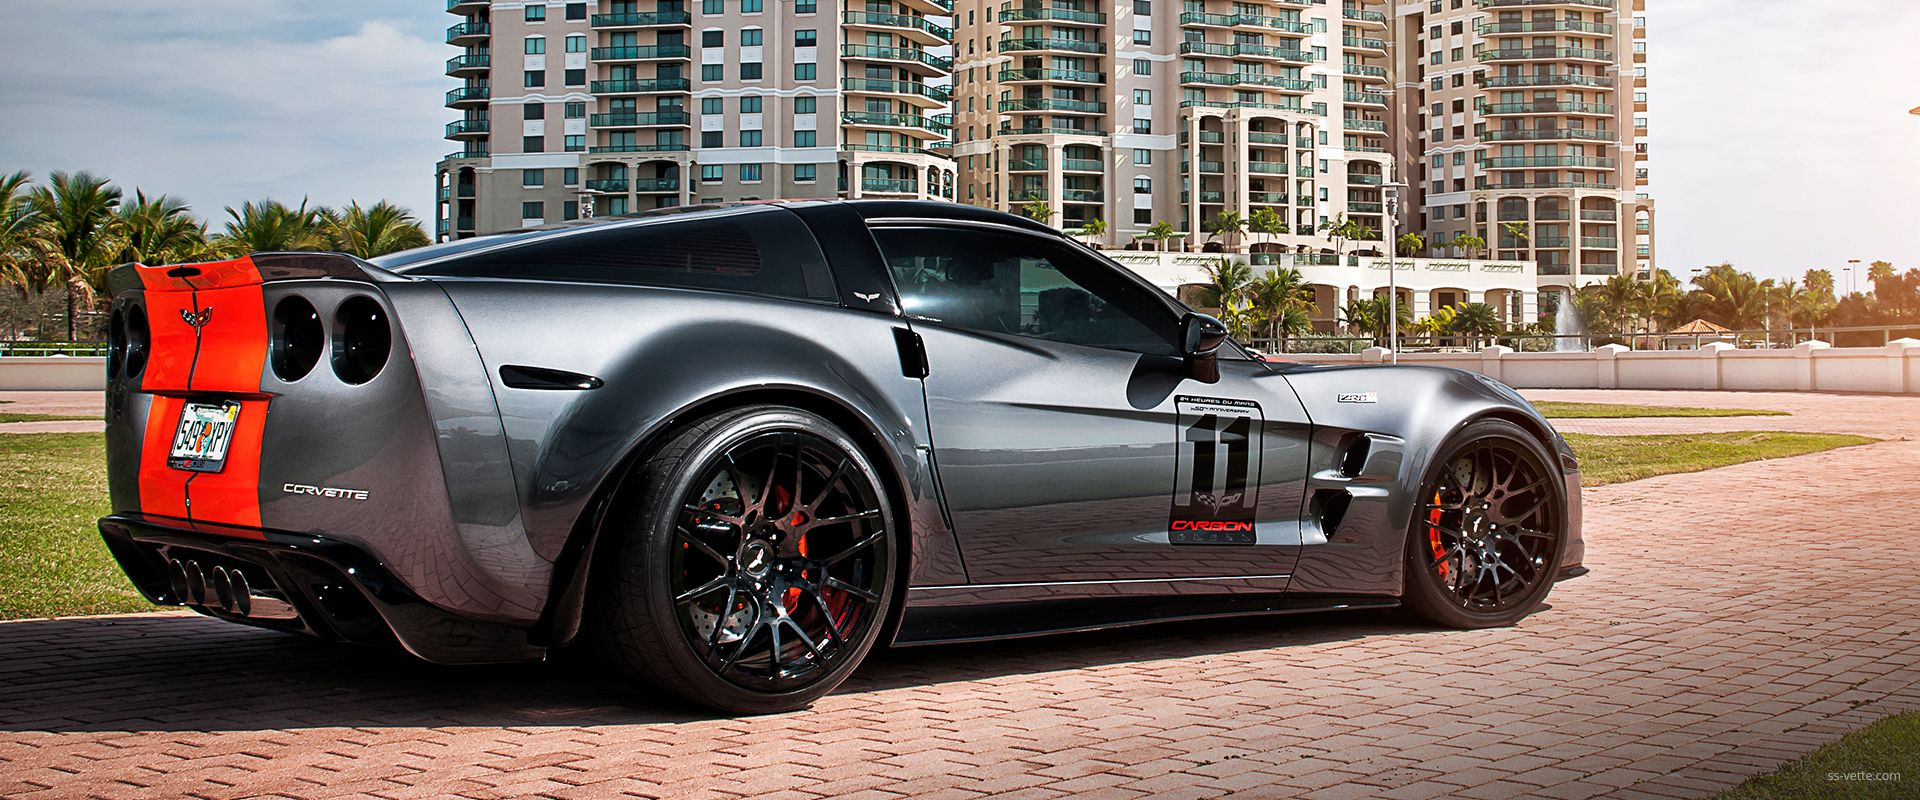 pin by alpatrick golphin on corvette c6  with images